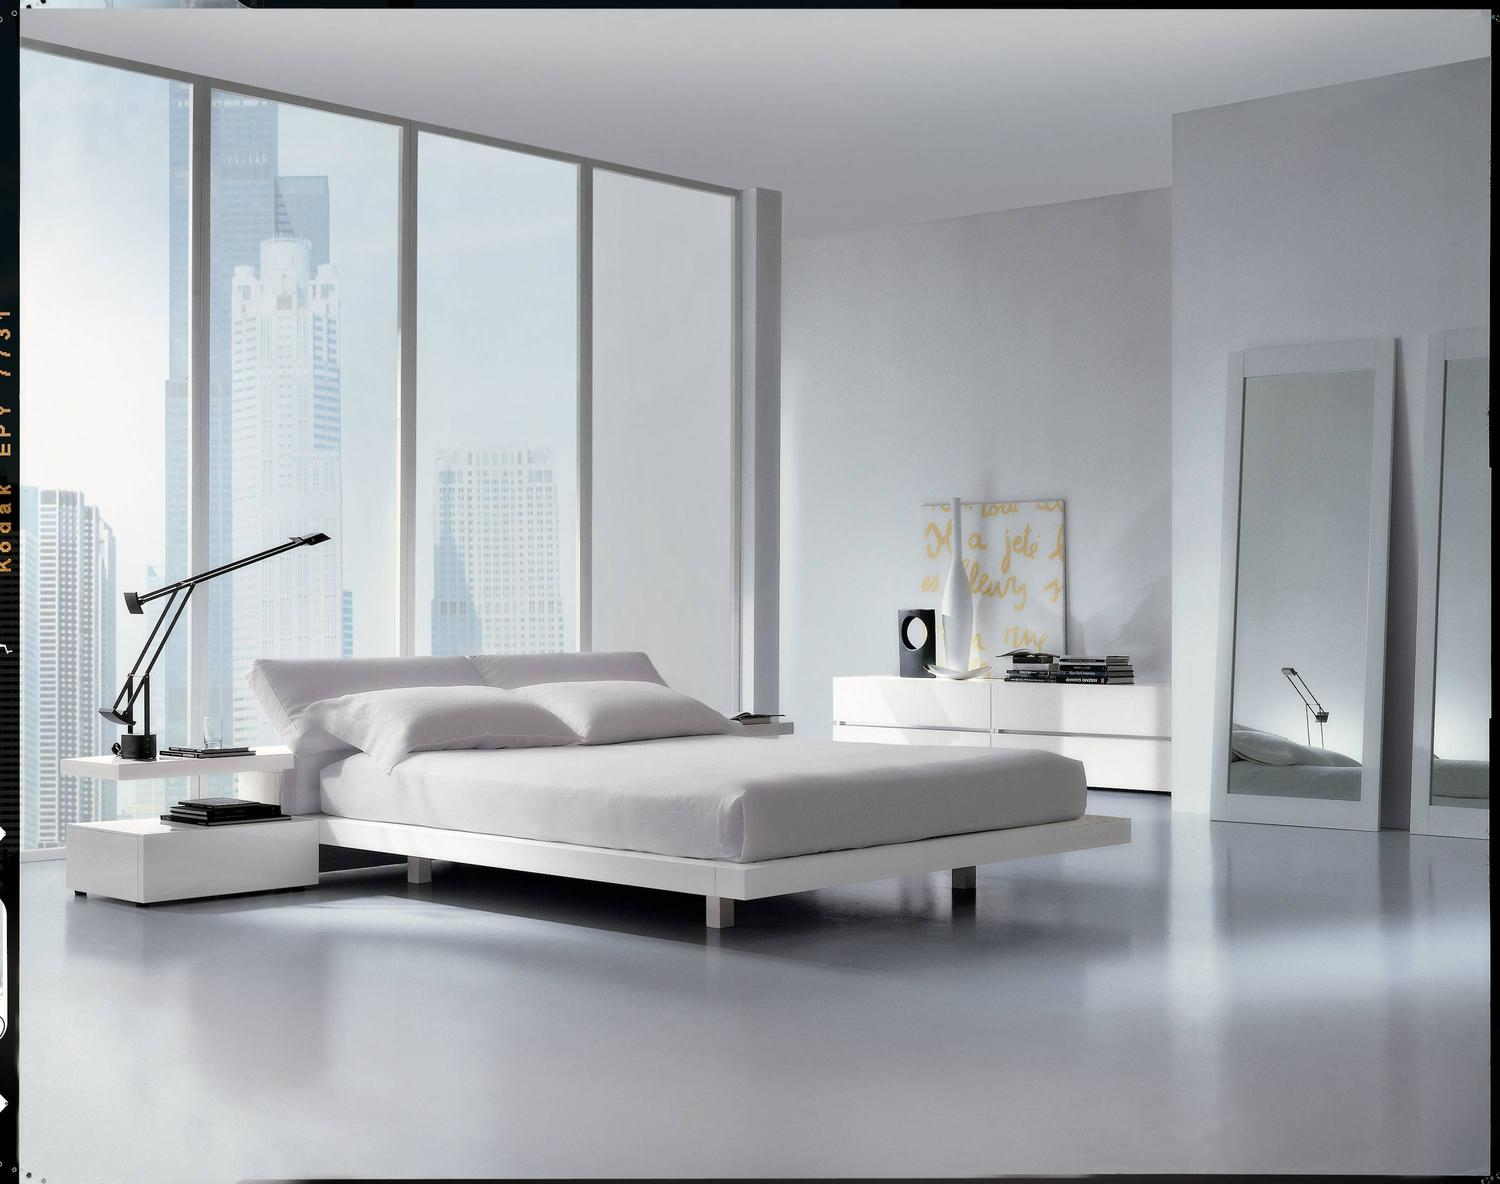 italian bedrooms furniture. Italian Modern Platform Bed, Furniture, High Gloss Lacquered For Sale At 1stdibs Bedrooms Furniture